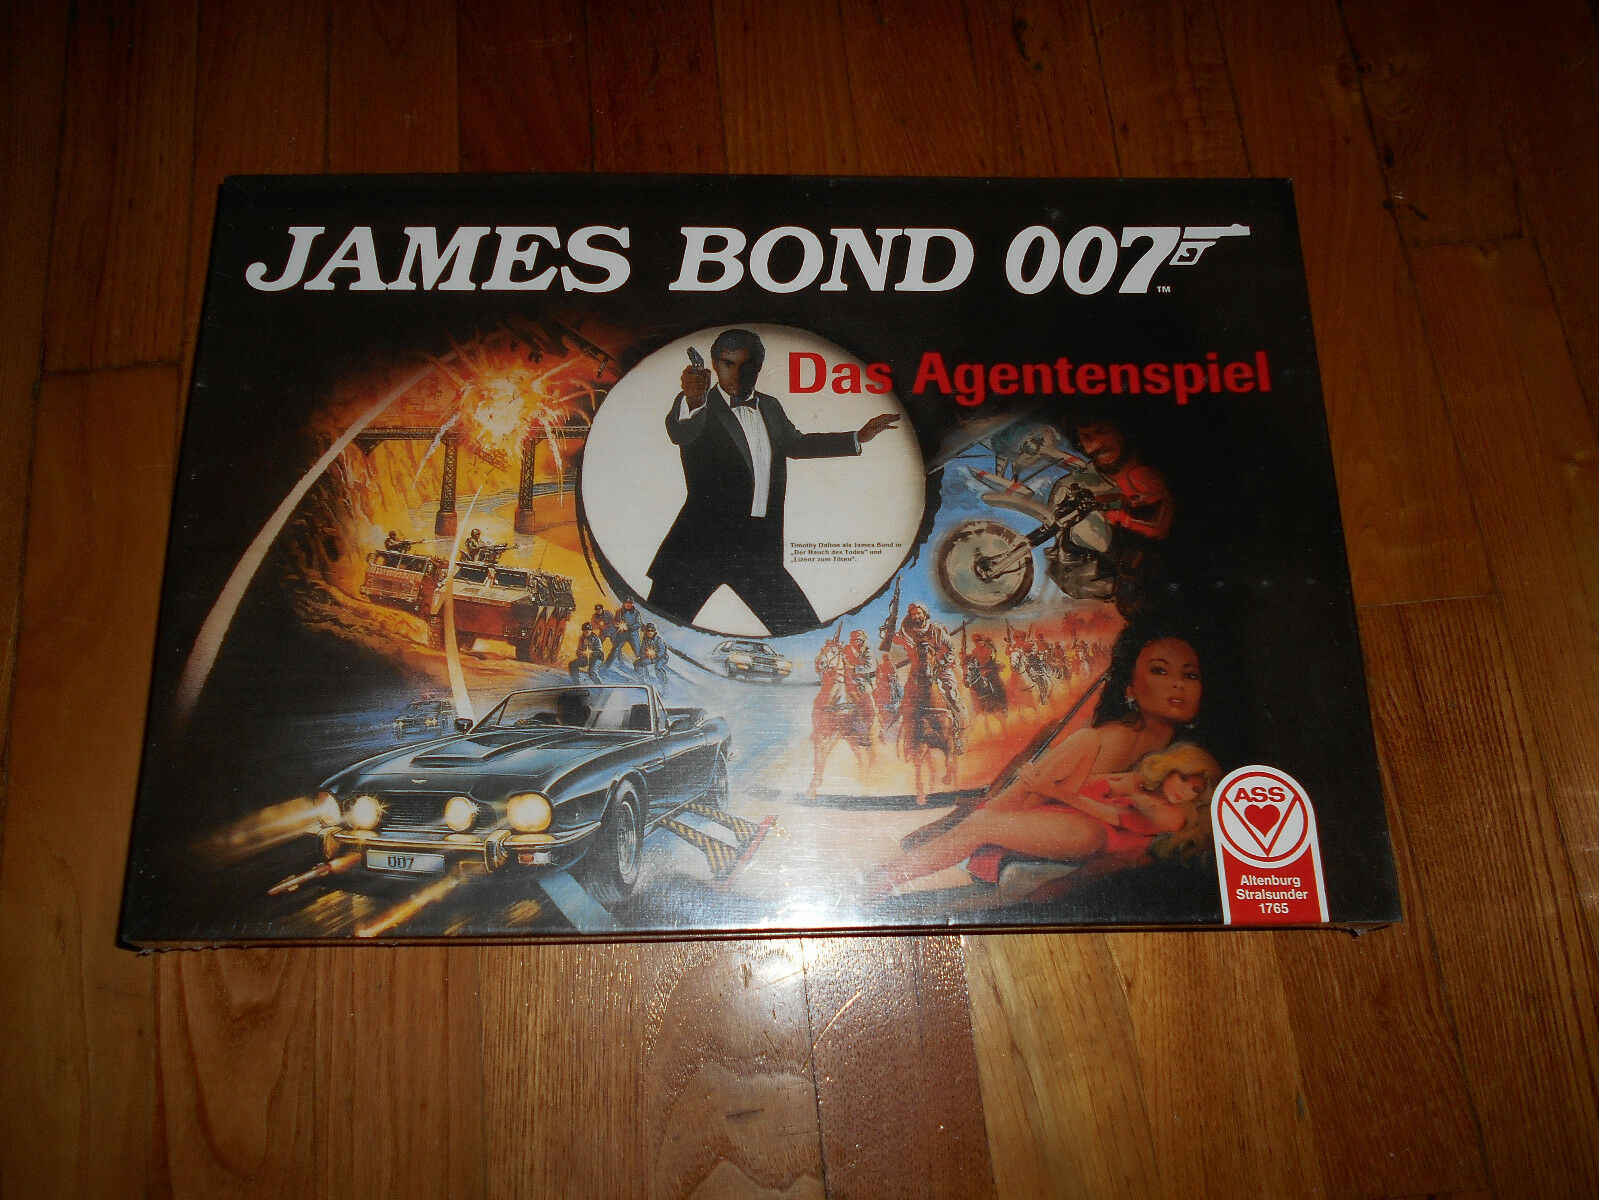 JAMES BOND 007 Das Agentenspiel boardgame SEALED German